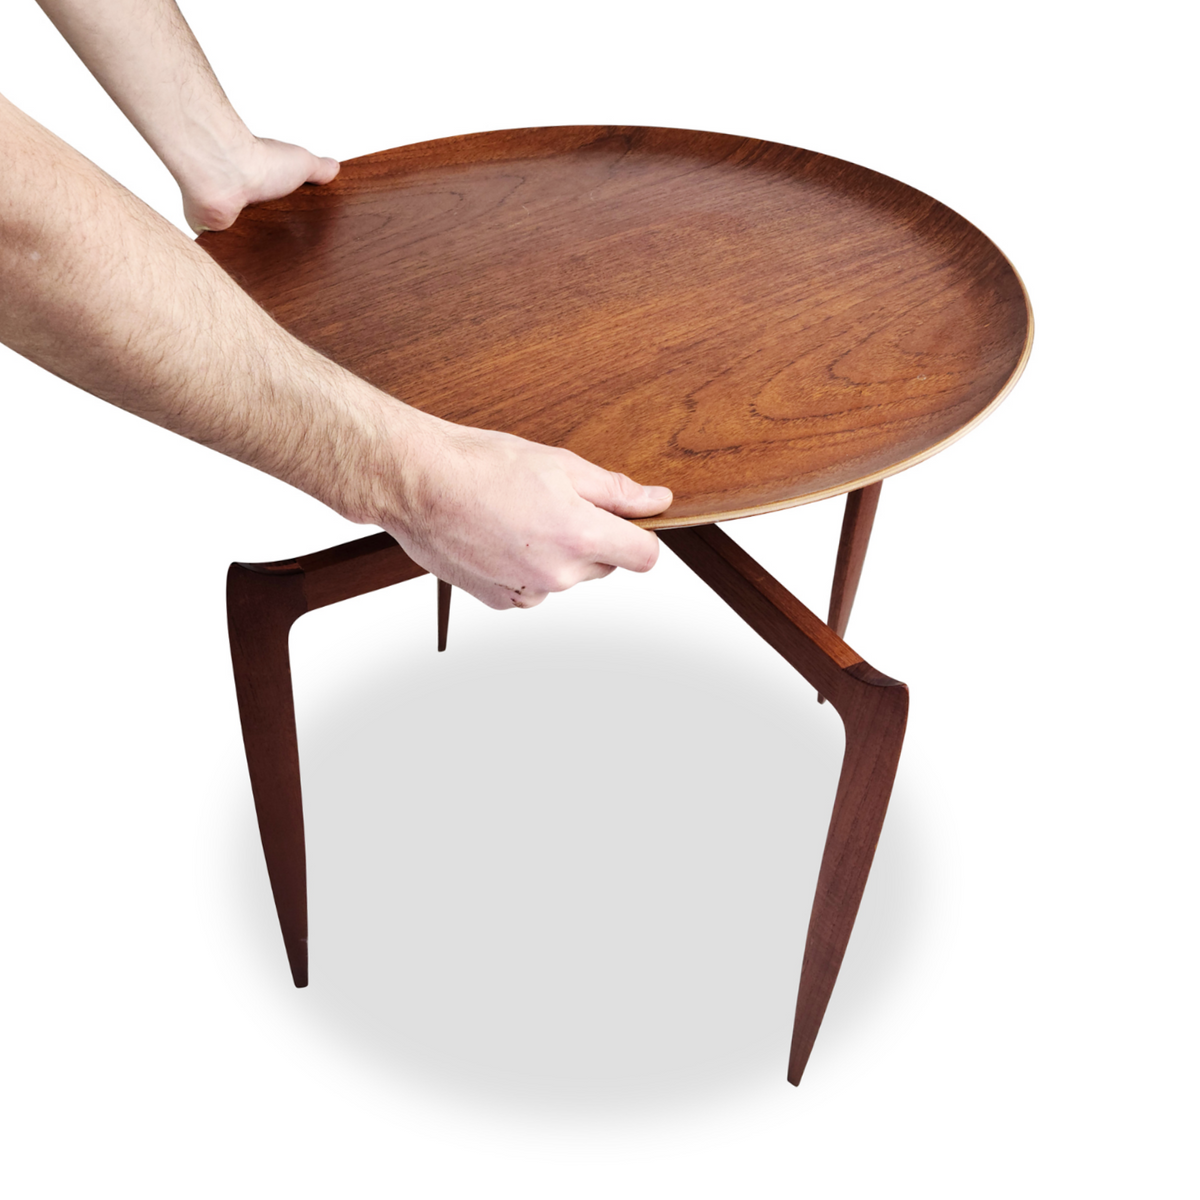 Tray Table by Svend Åge Willumsen & H. Engholm for Fritz Hansen